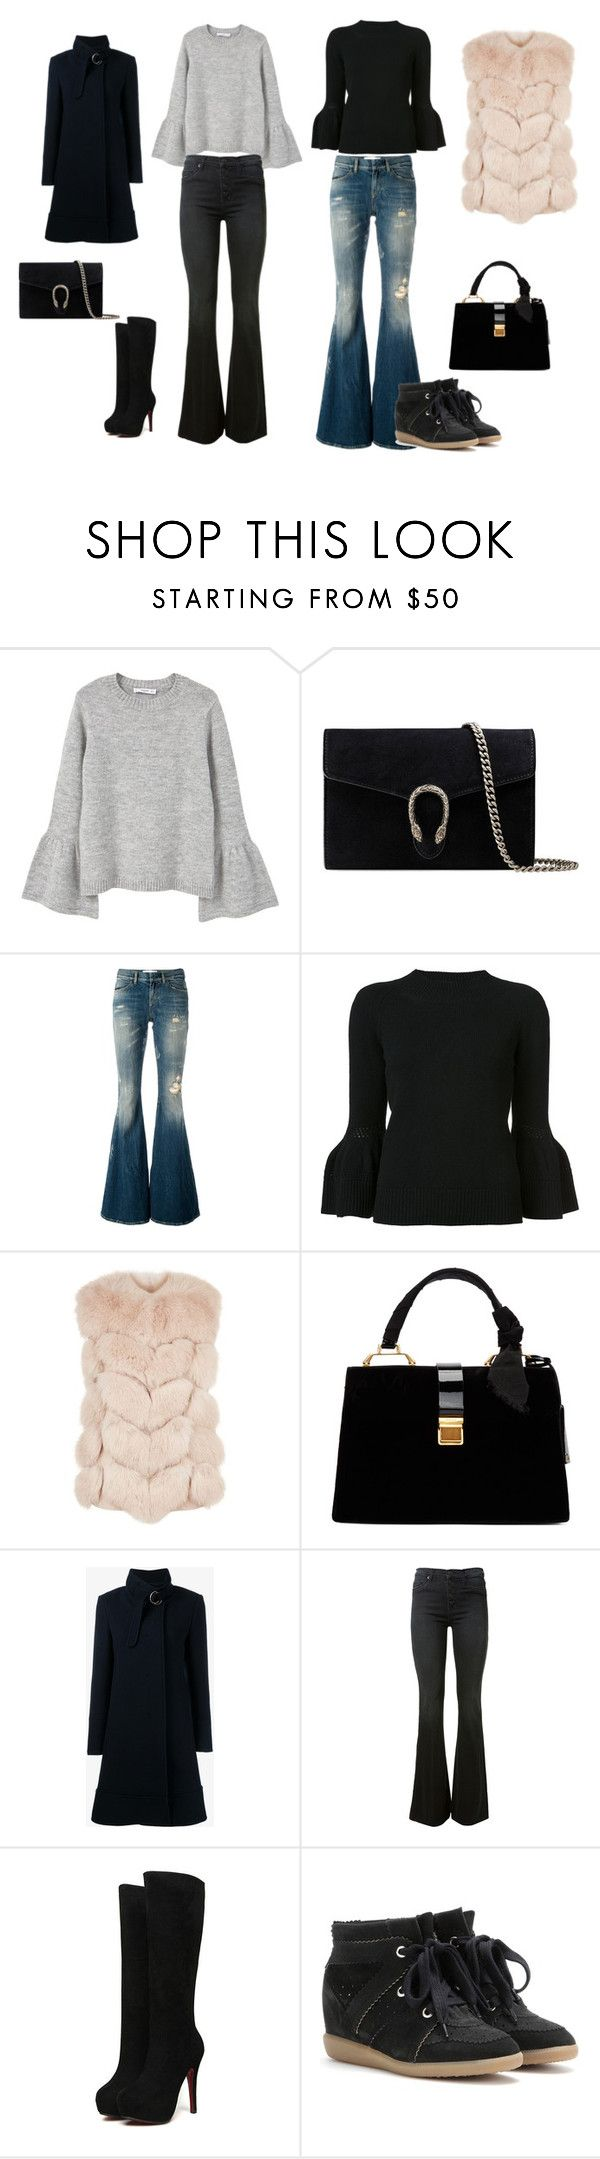 Untitled #2 by feliciamagelsen on Polyvore featuring MANGO, Carolina Herrera, Max & Moi, Chloé, Faith Connexion, Hudson, Isabel Marant, Miu Miu and Gucci